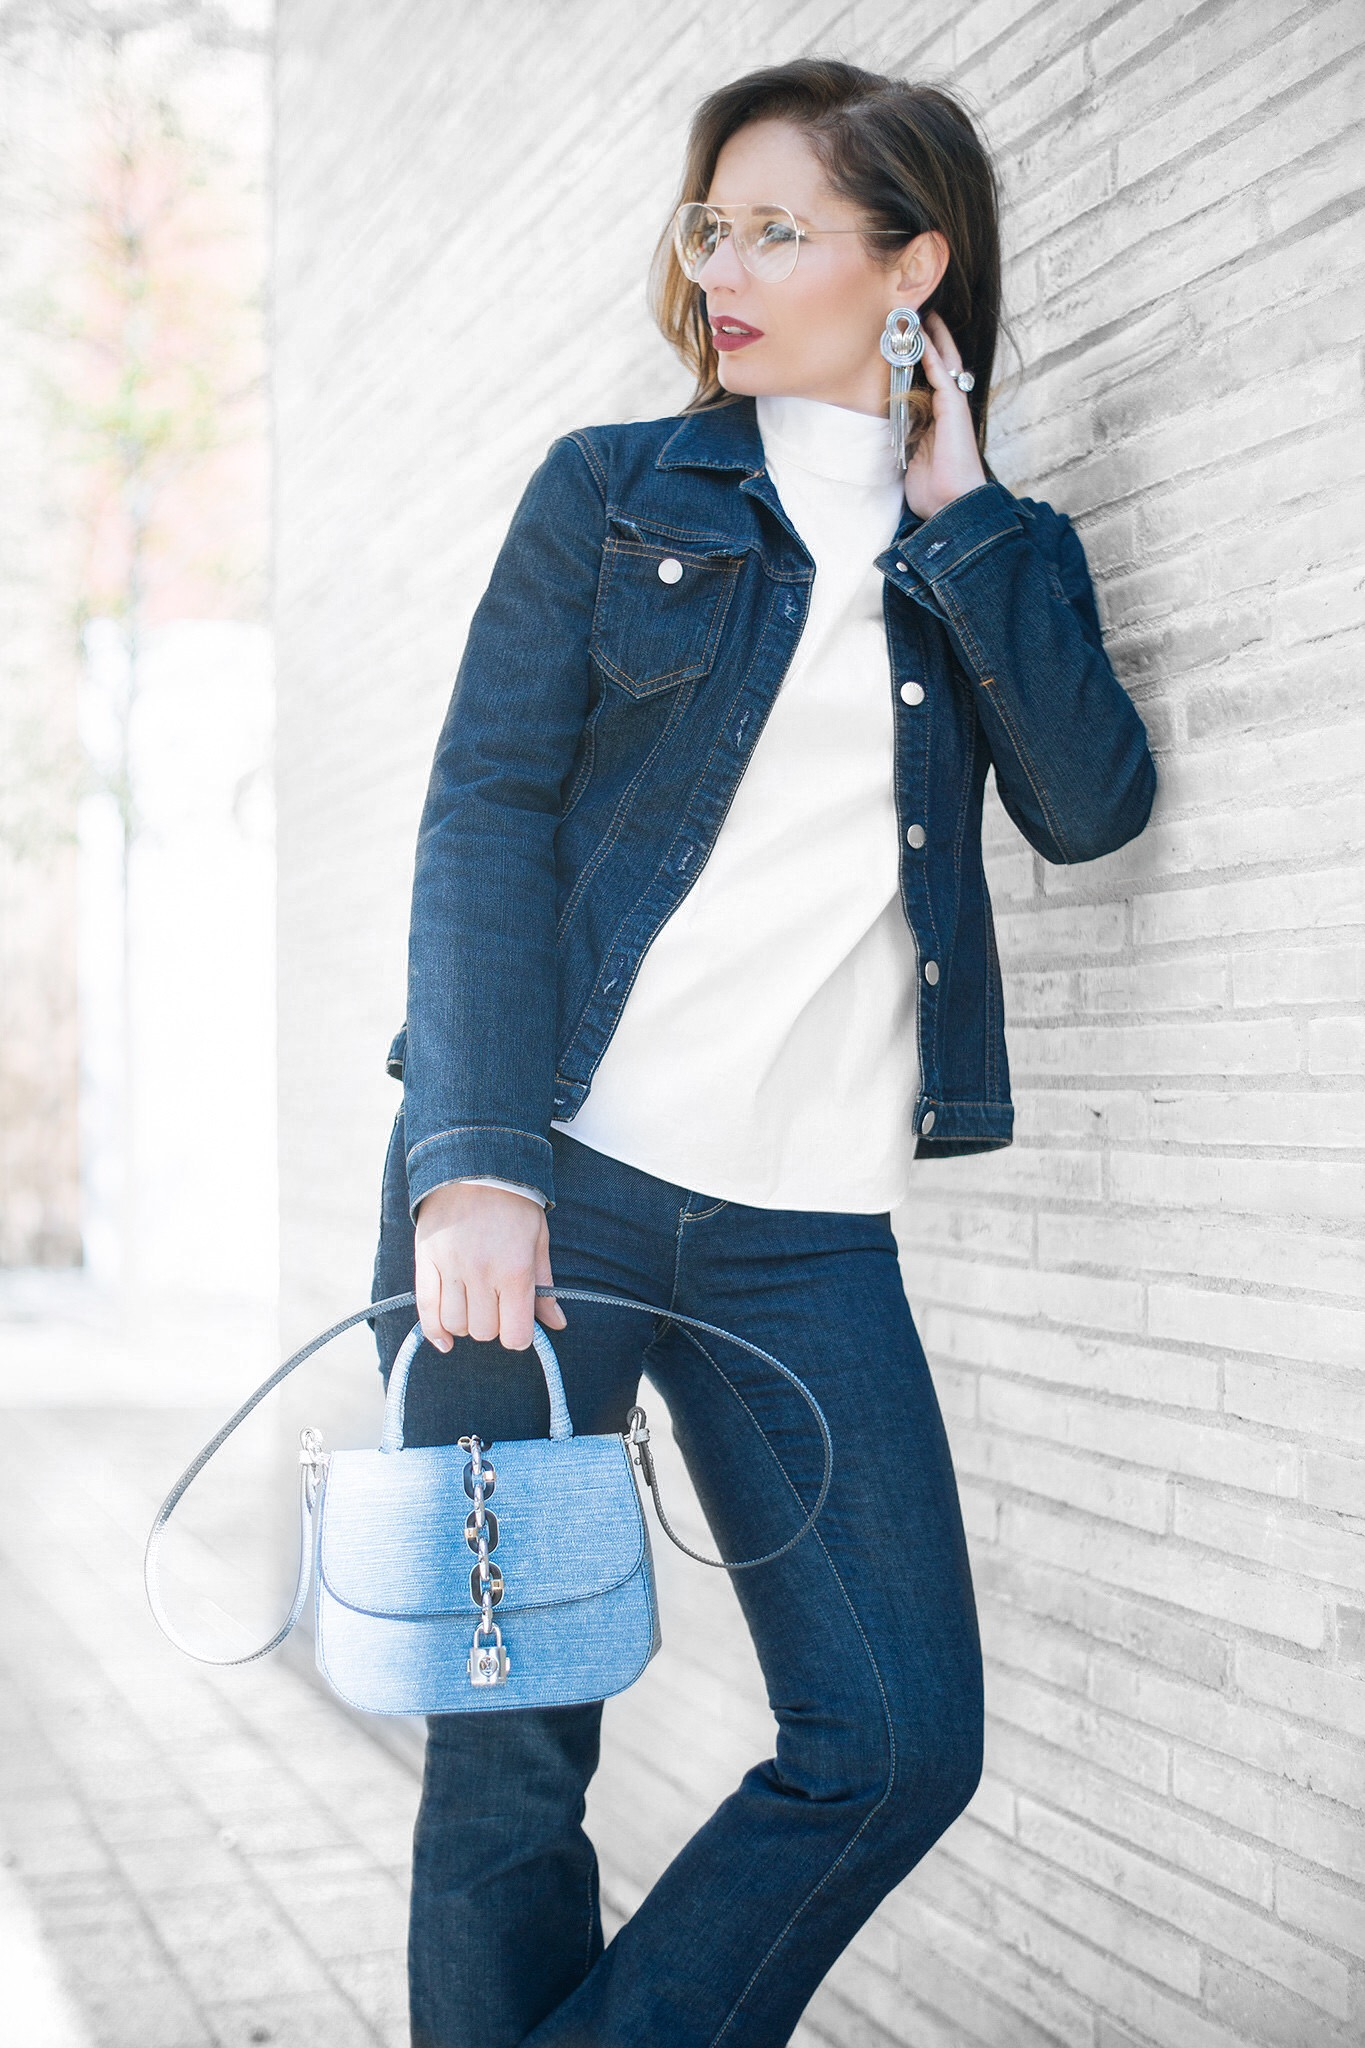 Wearing double denim is chic says Petra from Chic Journal blog